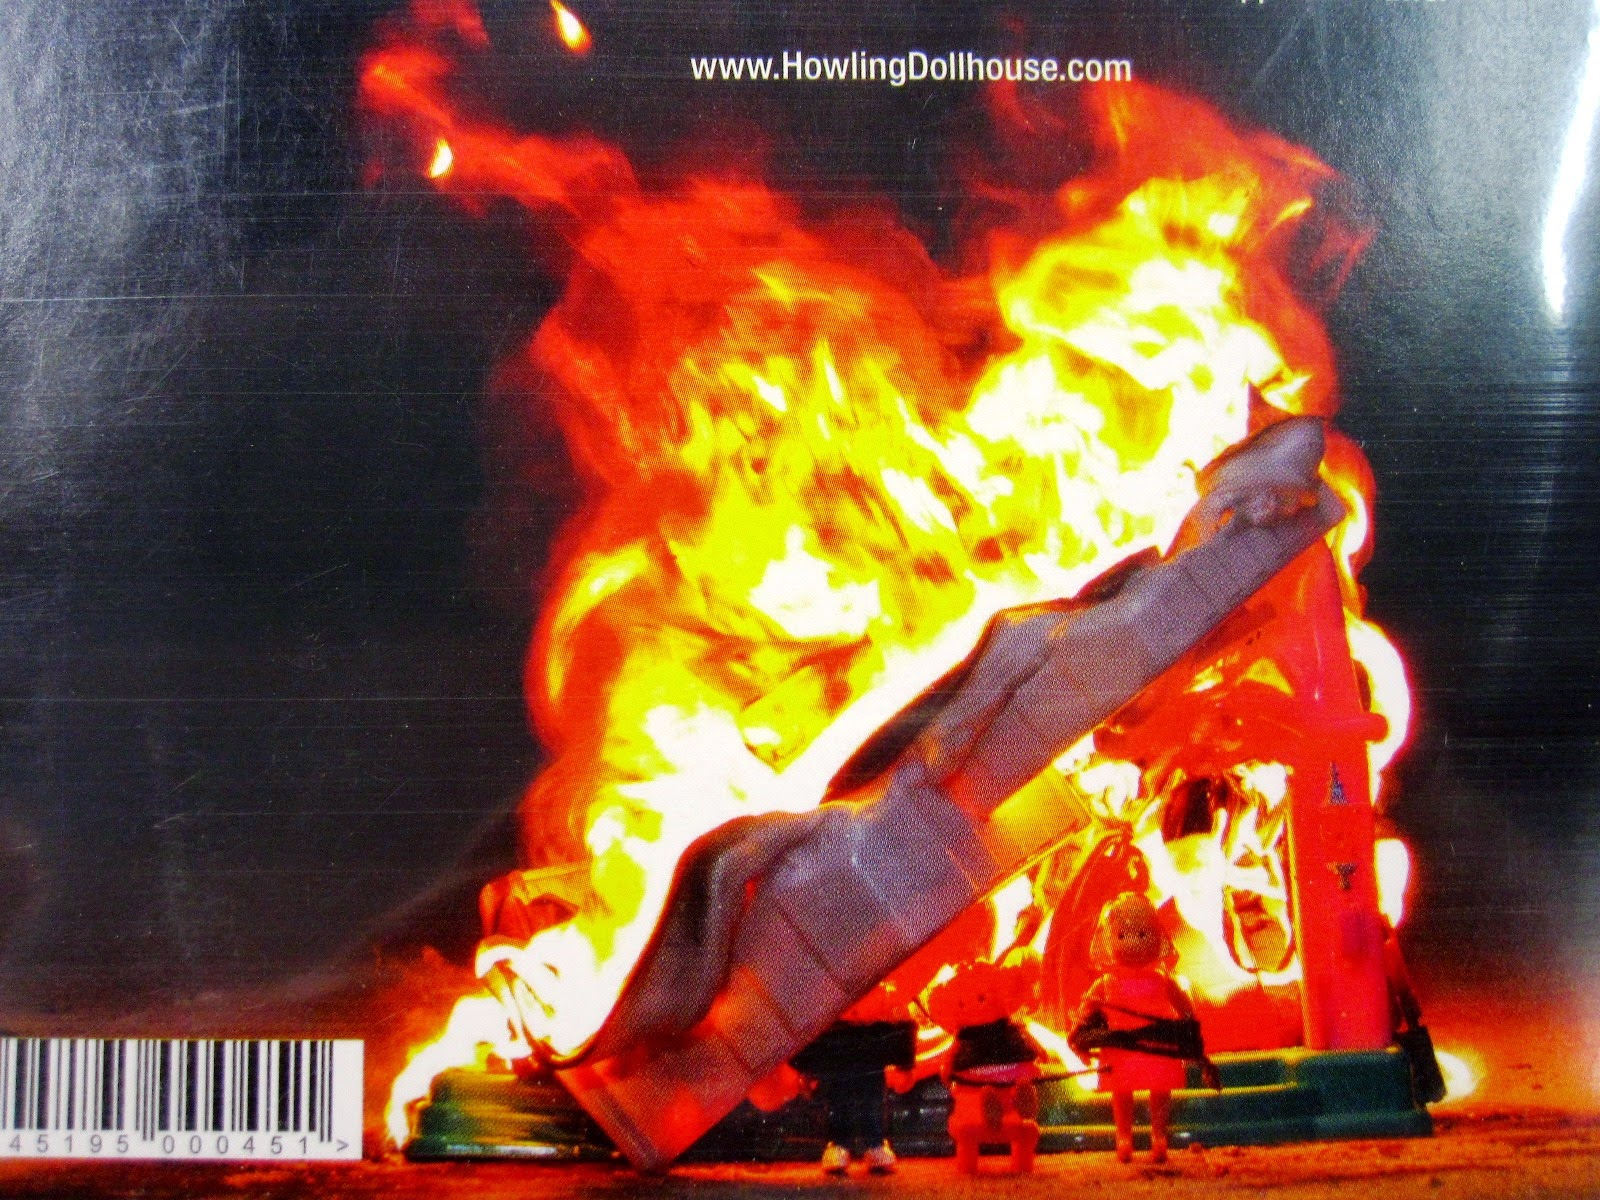 Back of a CD, showing a picture of a burning Fisher Price dollhouse.